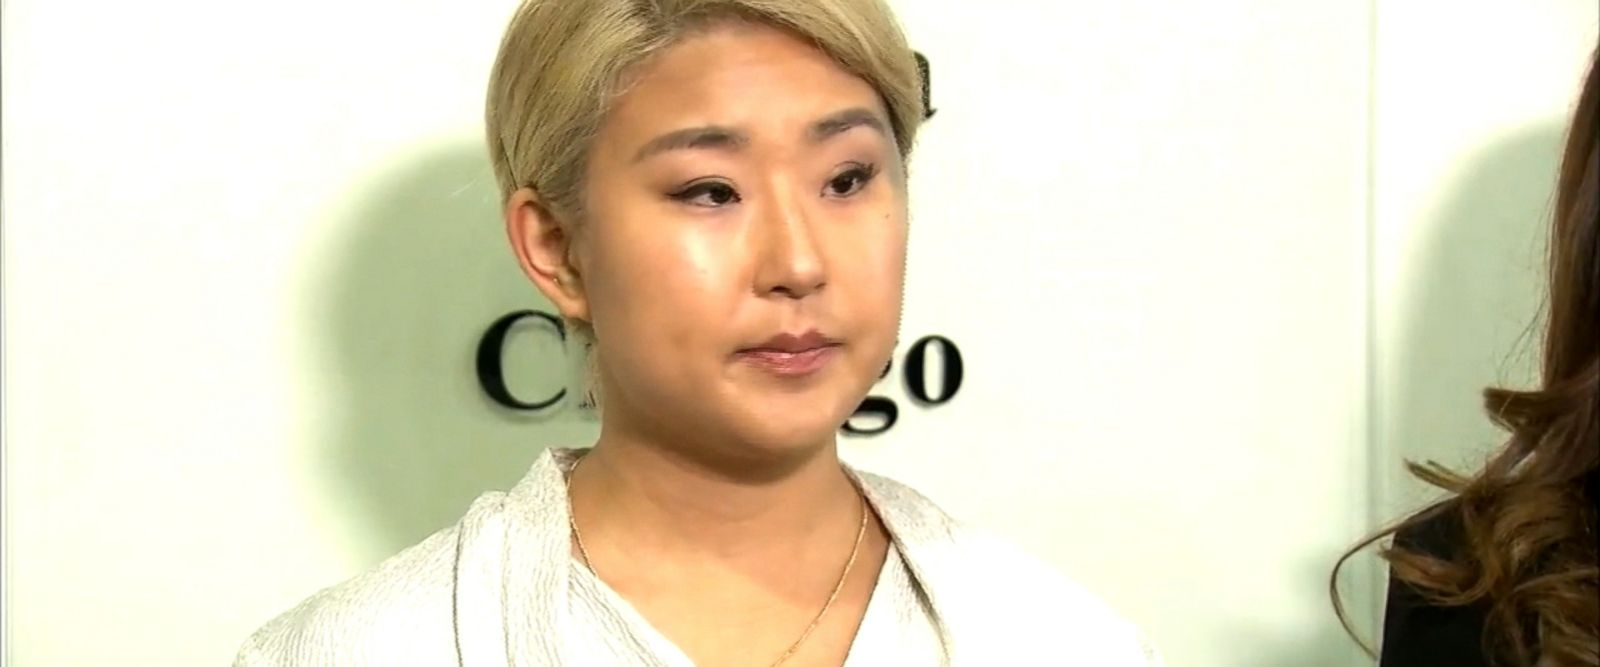 Savage has denied the allegations made by a costumer, Youngjoo Hwang, who claims the actor physically and verbally abused her.